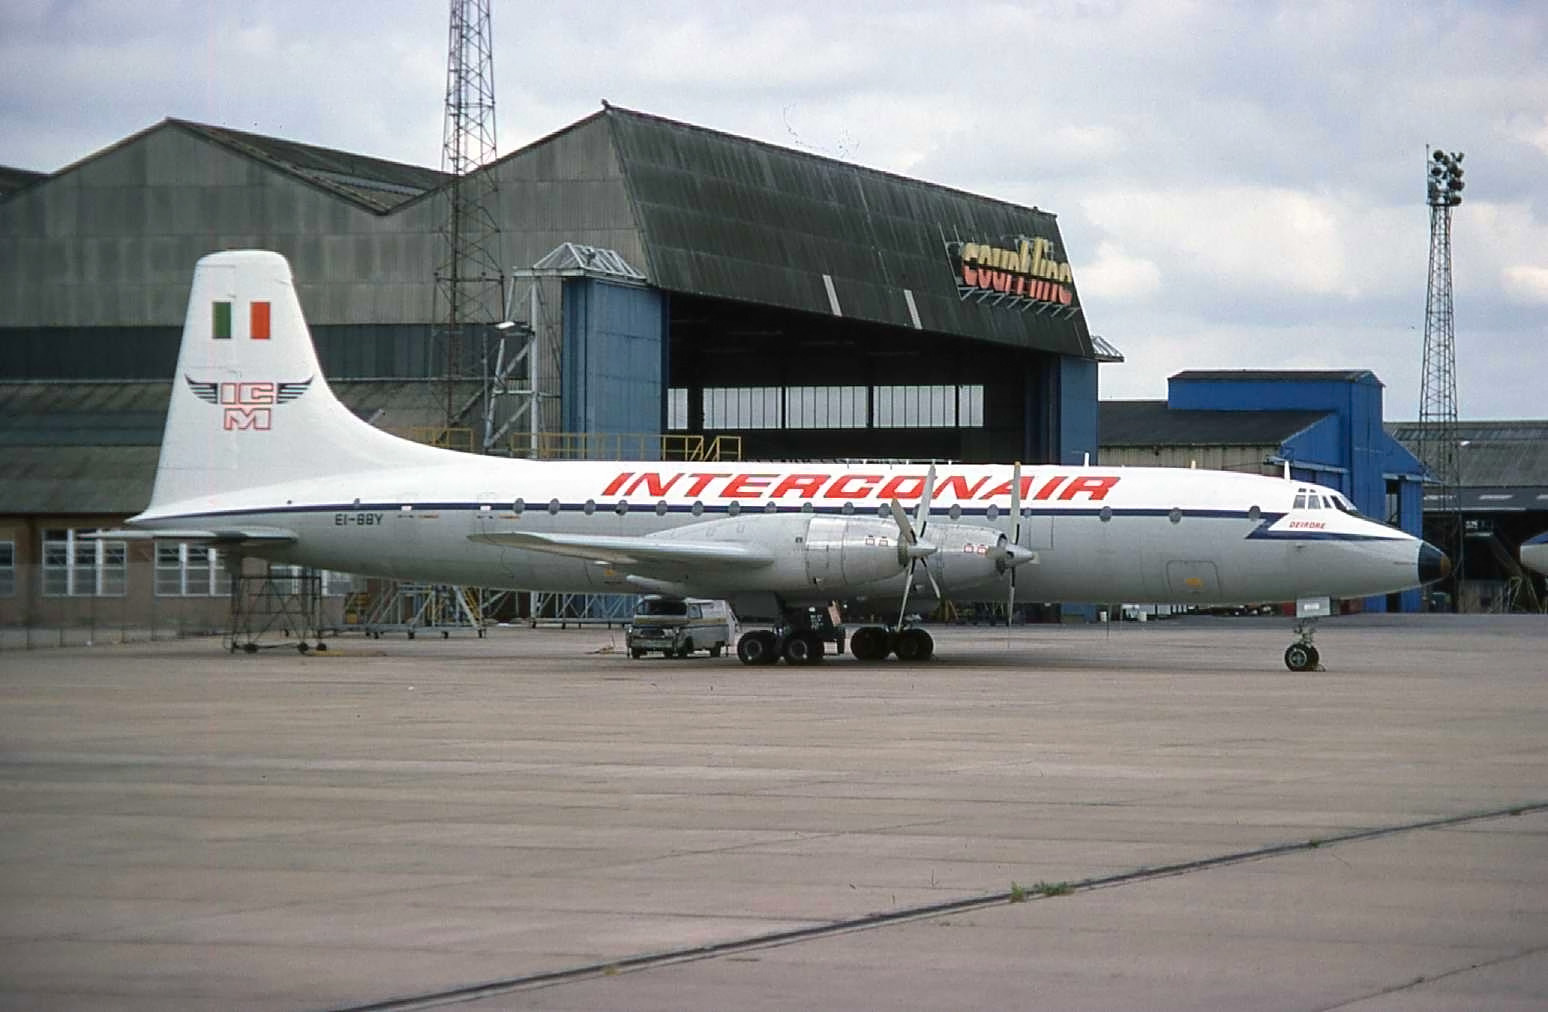 """The famous Court line hangar and an Interconair (Ex RAF) Britannia EI-BBY parked outside . Luton Airport August 1976. On a visit to Luton only last week (August 2019) I was recalling seeing Cubana Britannias in this very same spot and driving down from MAN to catch a glimpse of the rare beasts!  A quick check with the Security Guard on the gate…""""Any chance of a quick walk on the ramp for a picture of the Brit?"""" …Sure no problem! In fact our early coach trips got permission for a drive around the ramp at o'dark thirty in the morning.Oh yes those foggy cold Winter mornings at Luton. I remember them well.."""